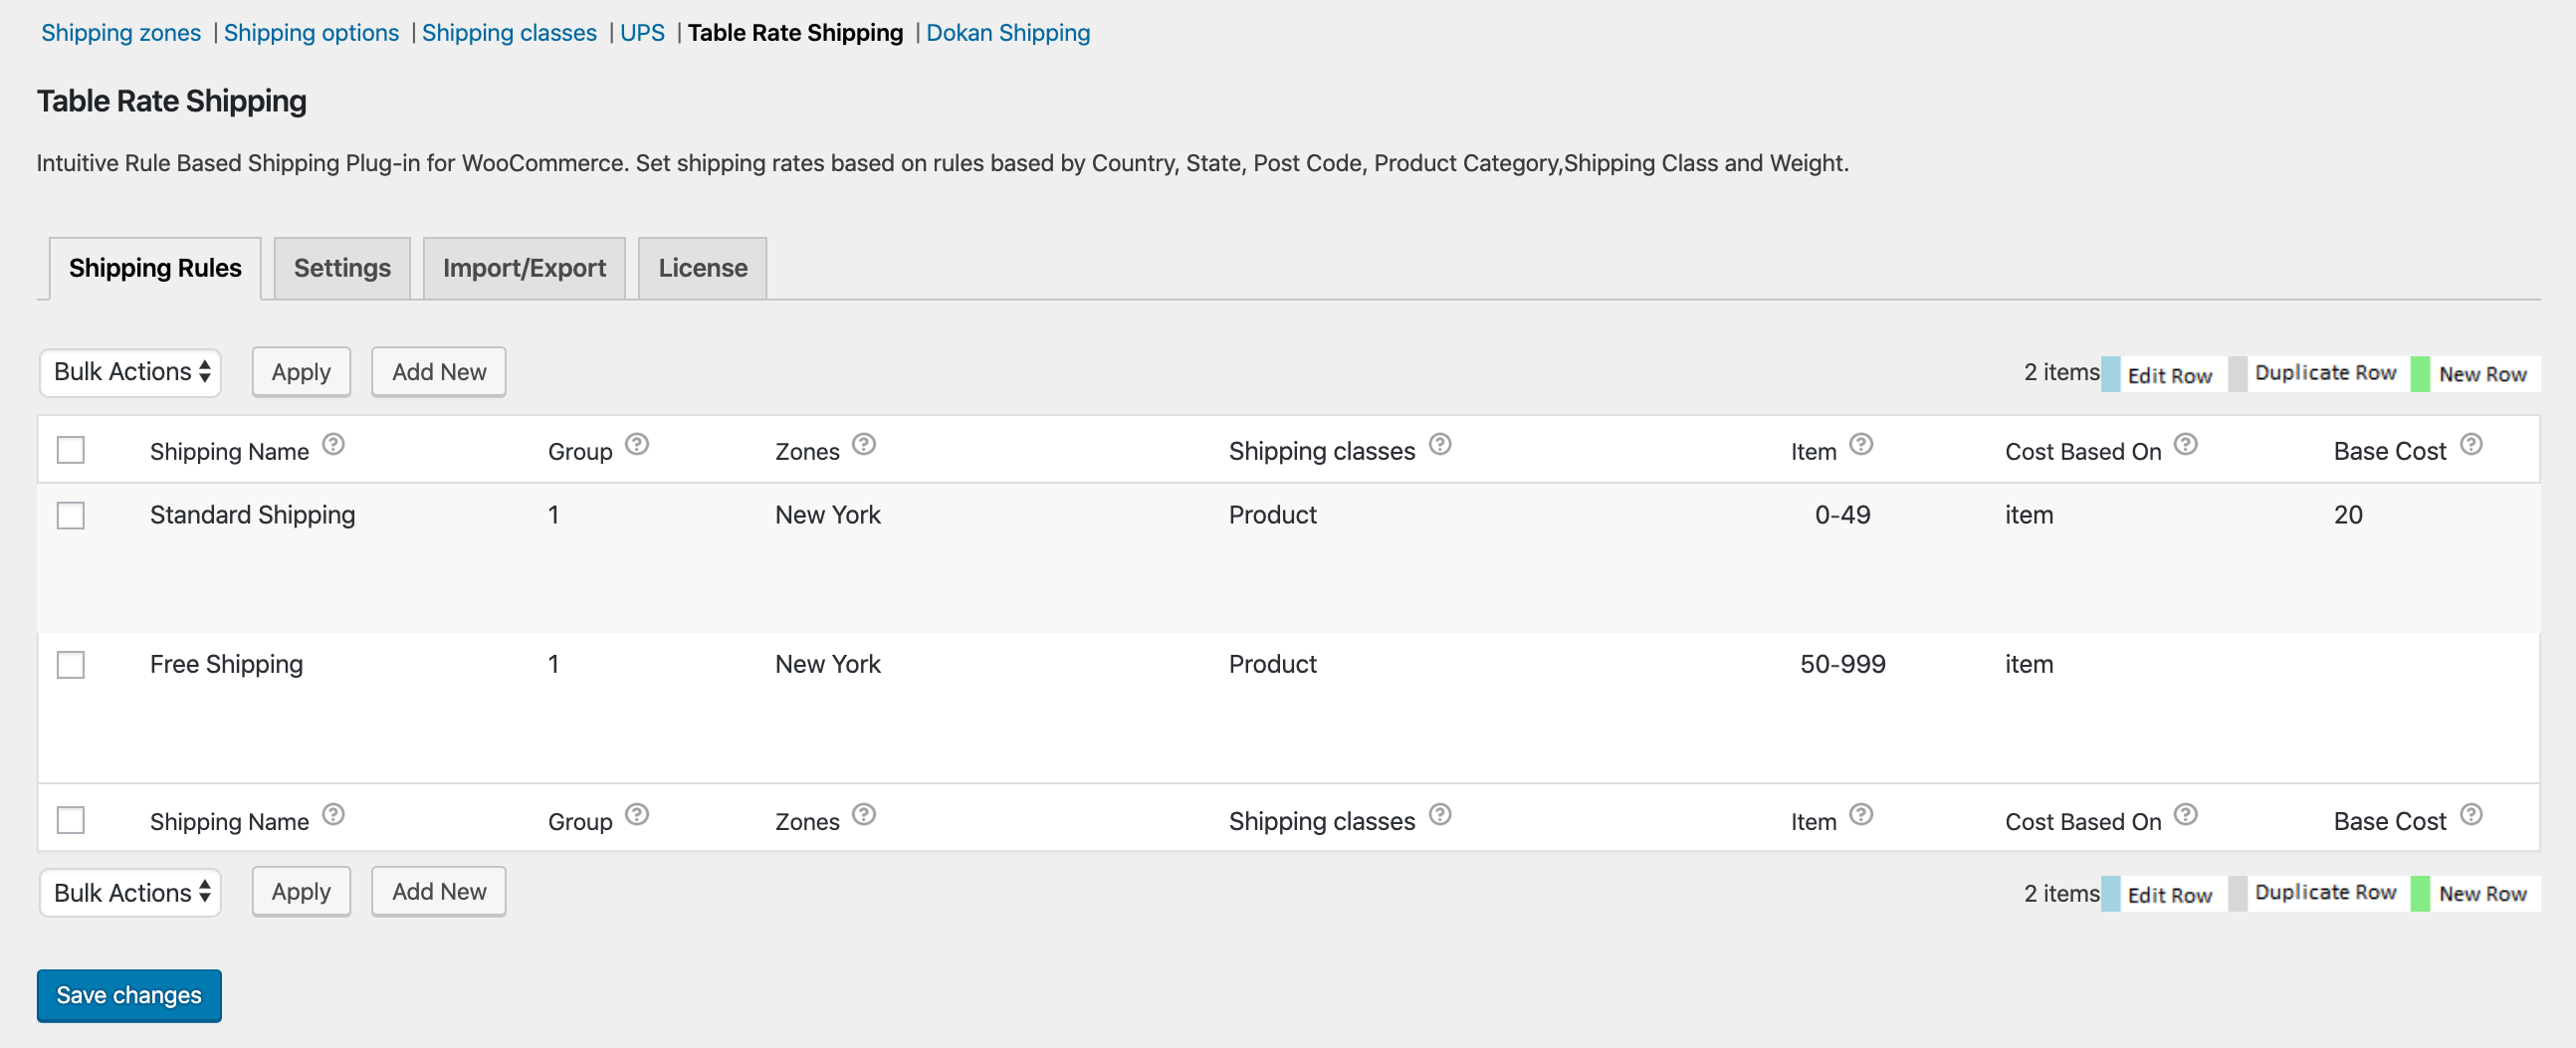 woocommerce table rate shipping settings page